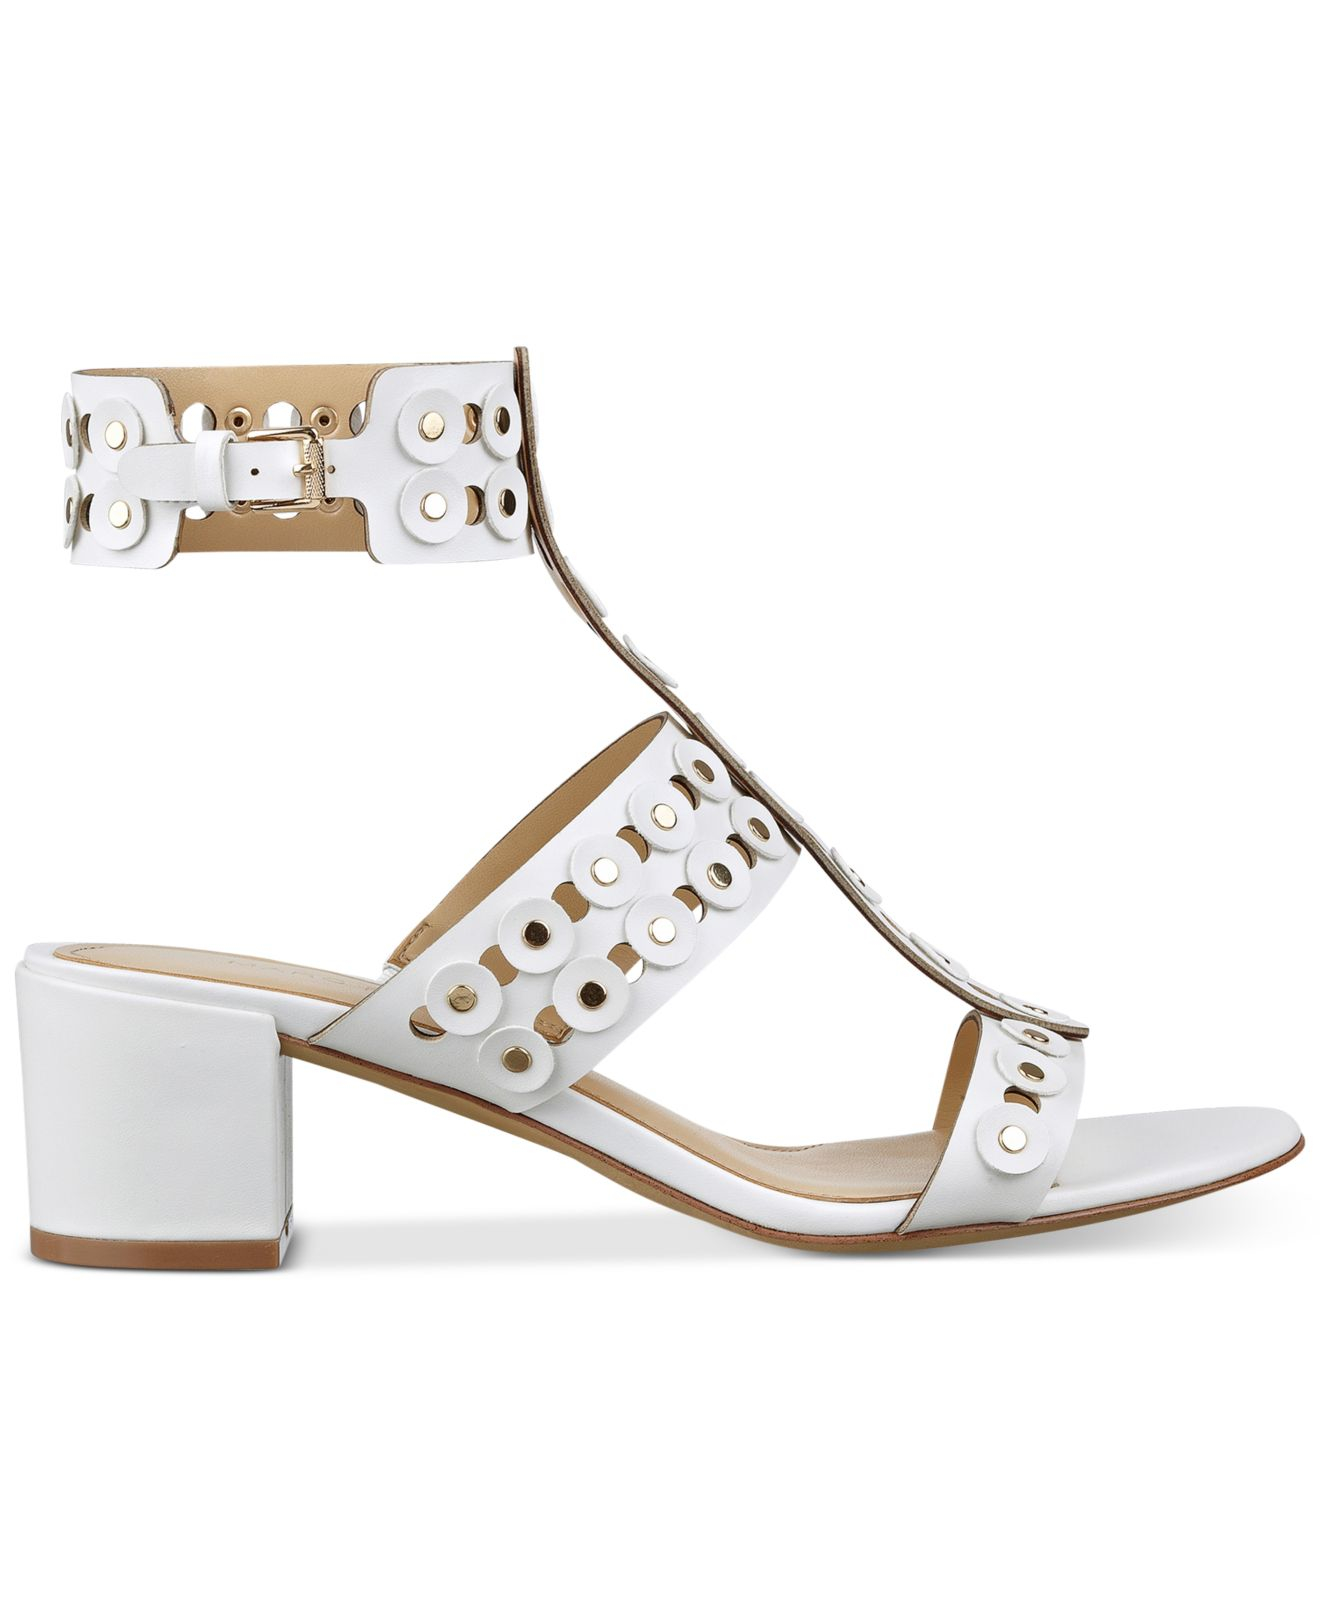 White Block Heel Gladiator Sandals - Is Heel